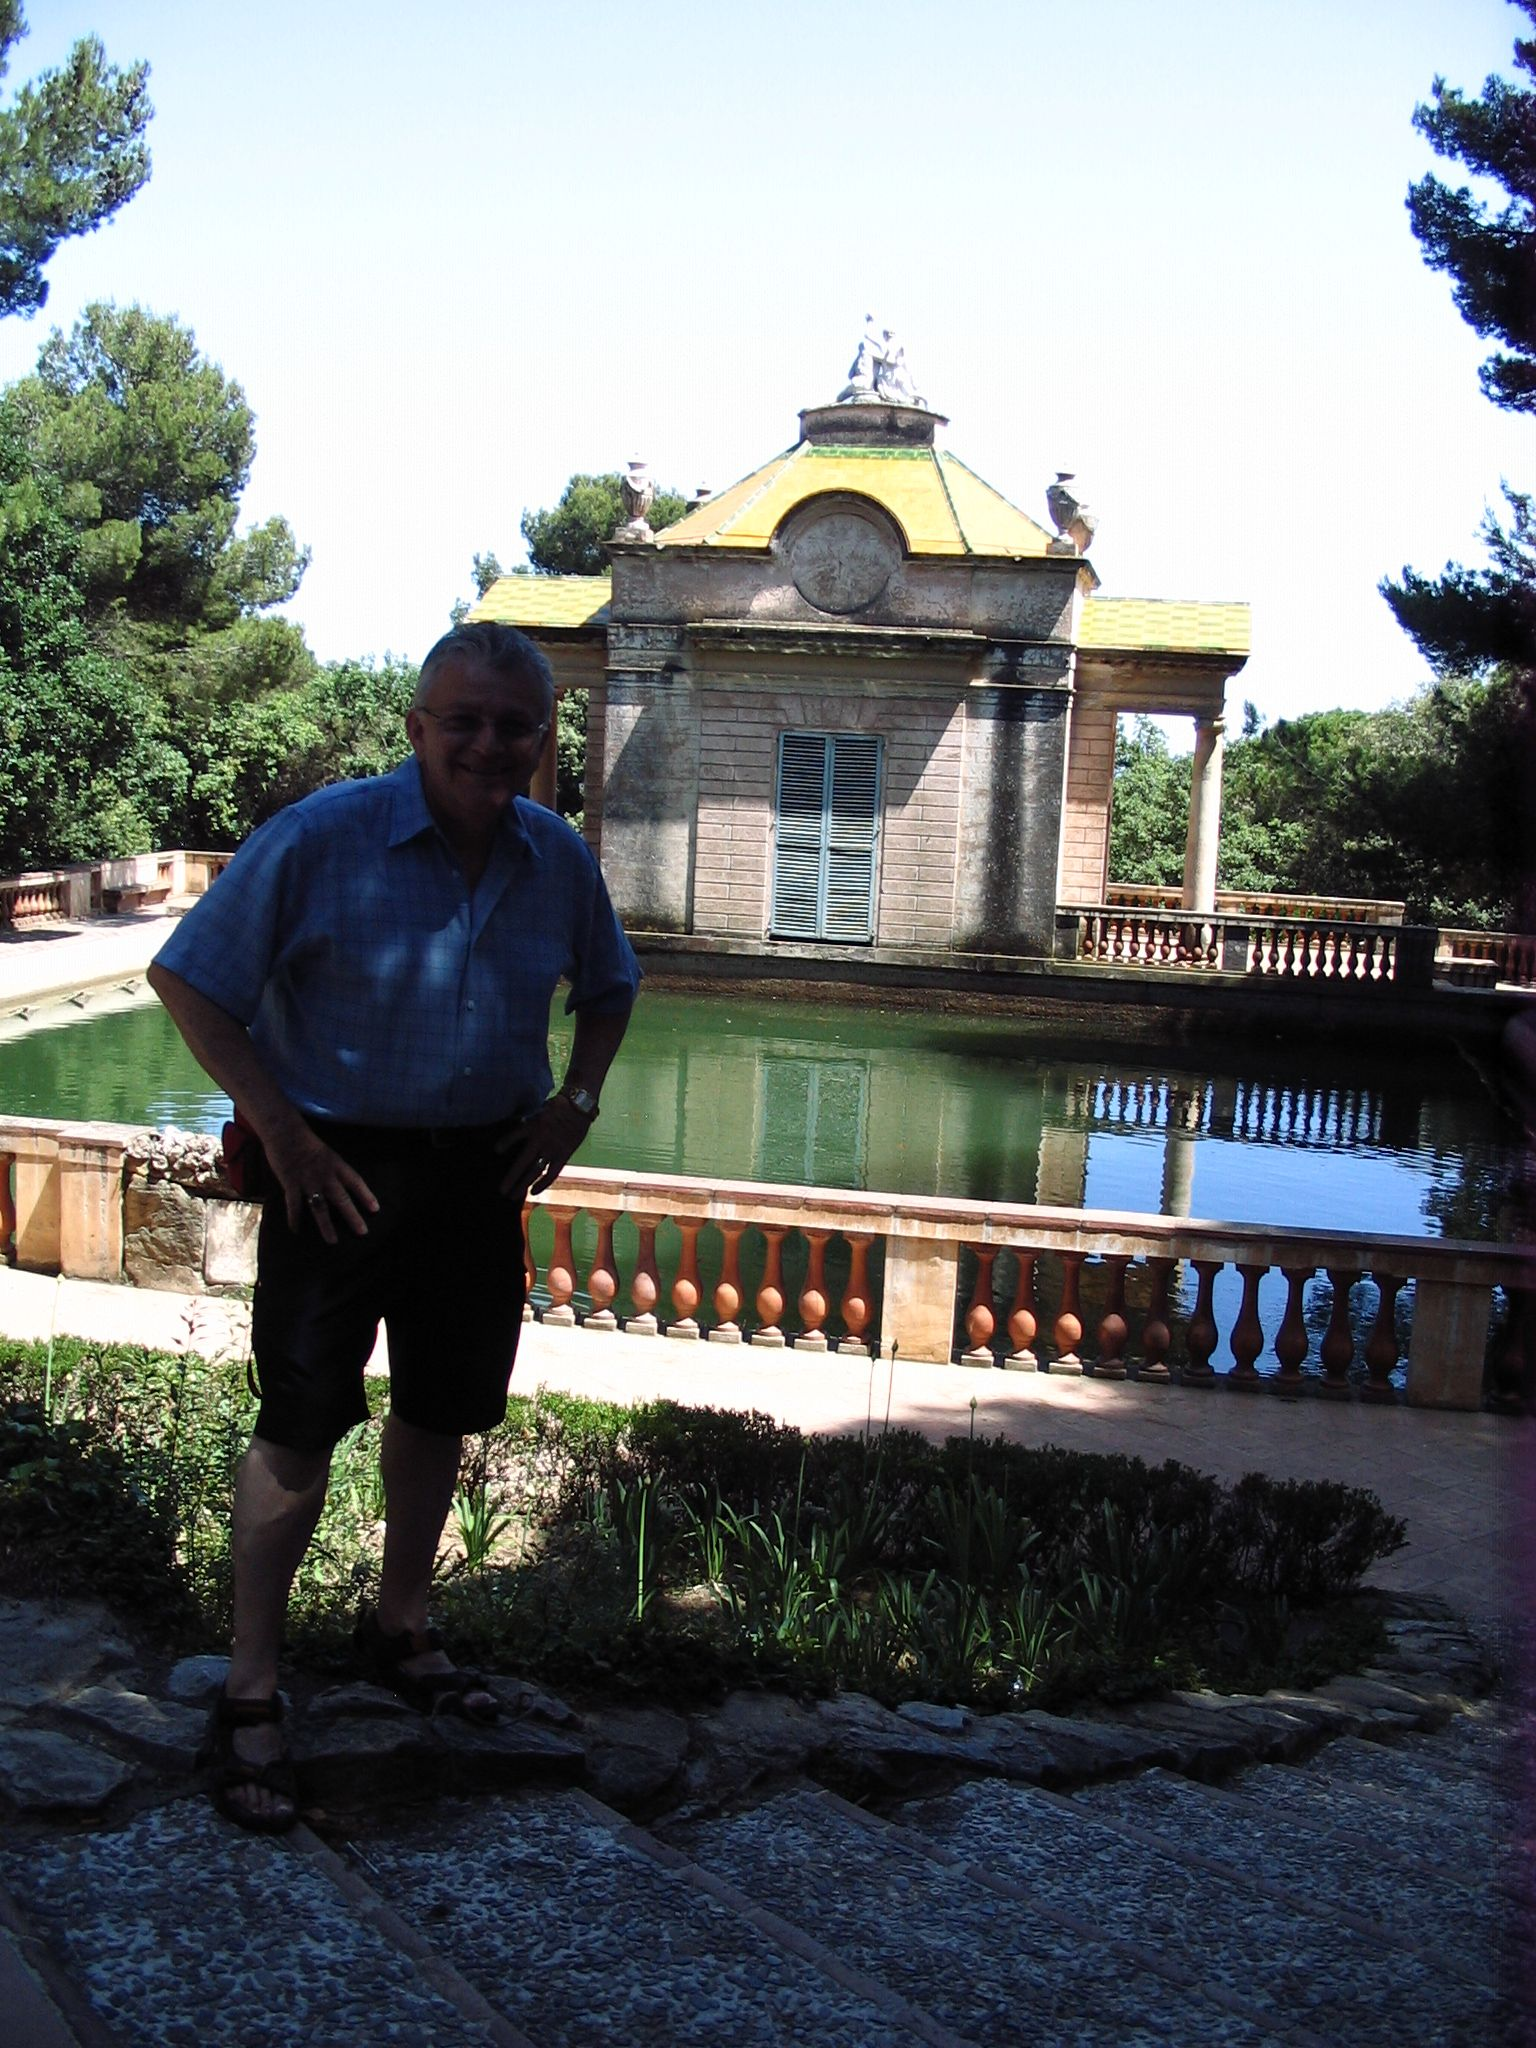 Barcelona's oldest garden, built before America was discovered. Still in use today. See it!